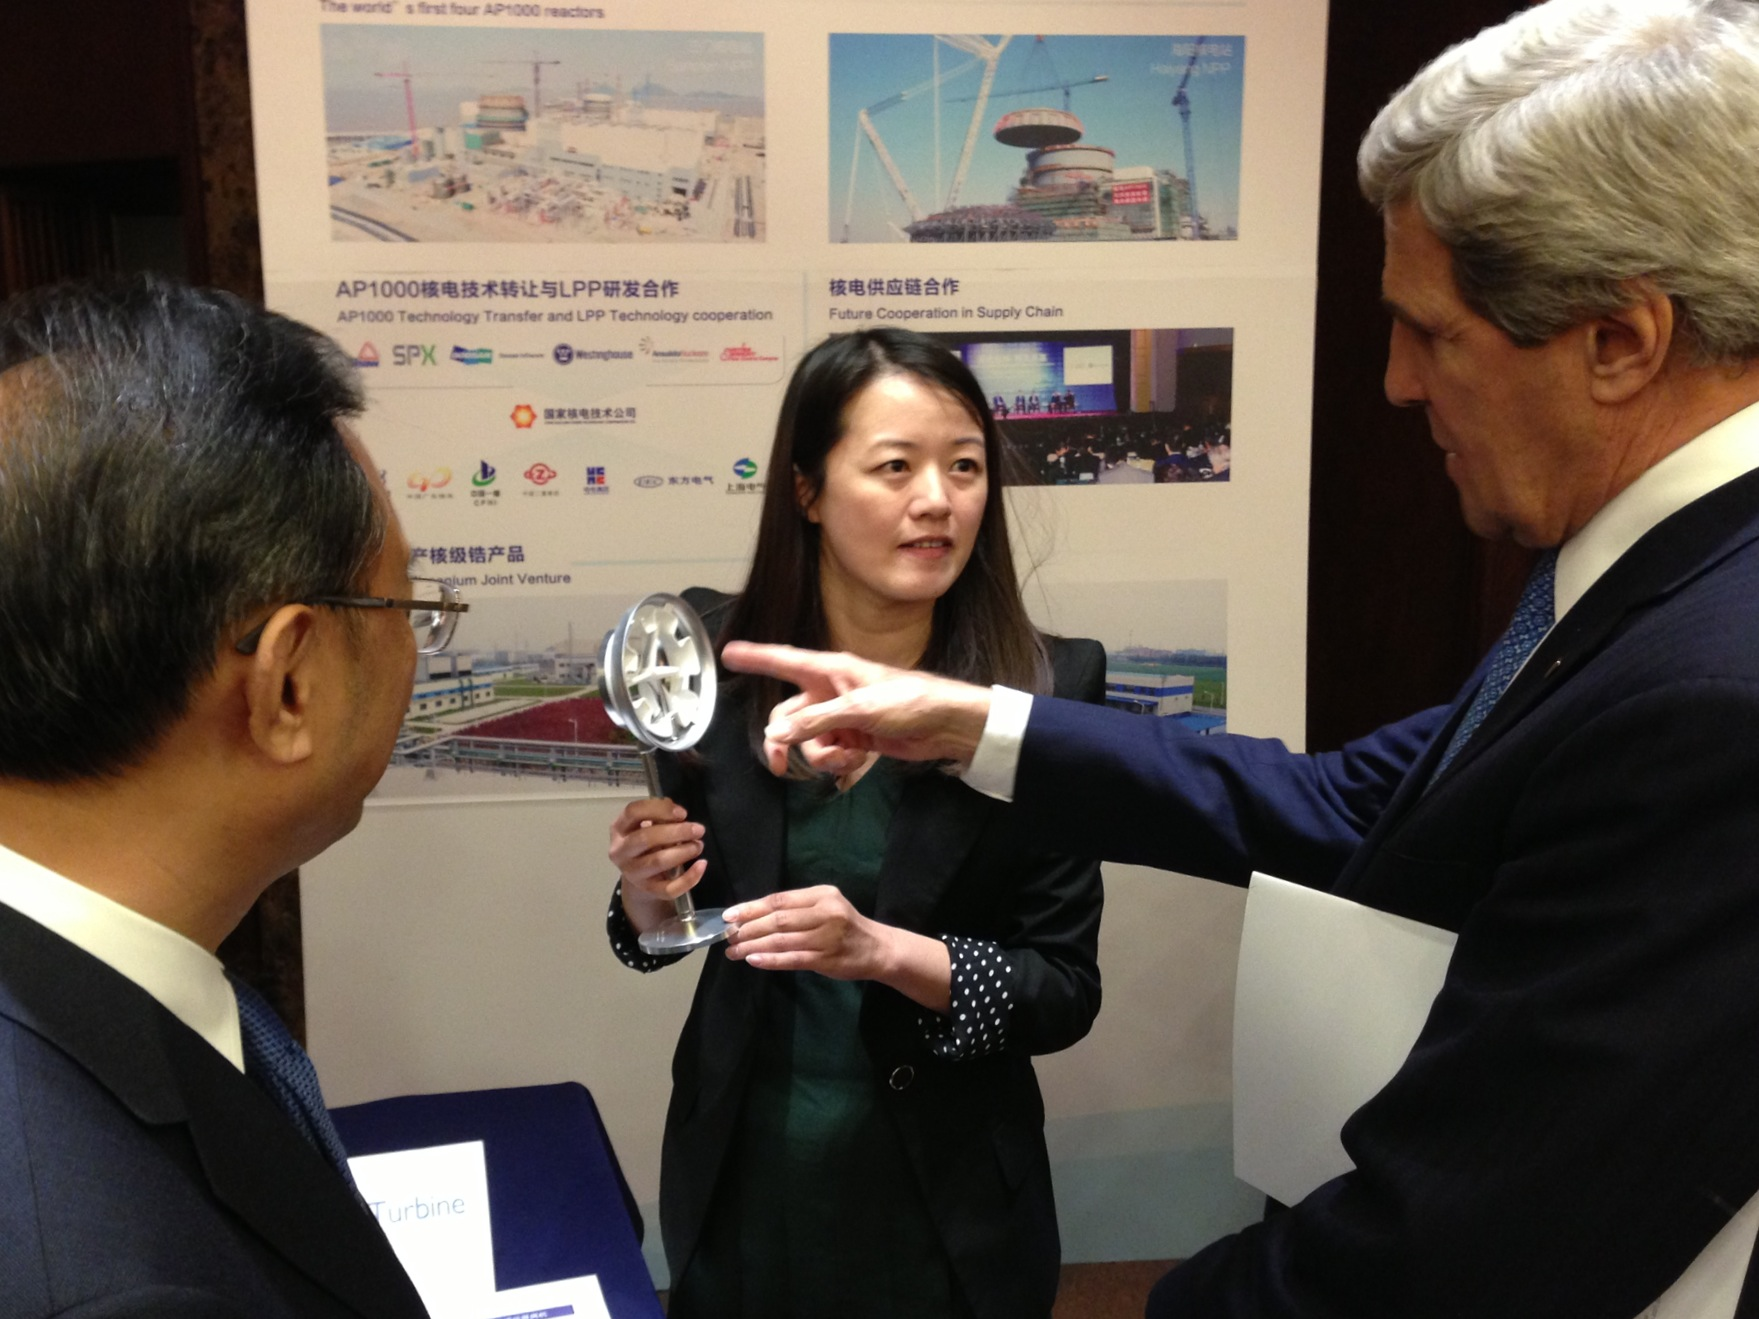 China State Councilor Yang Jiechi and U.S. Secretary of State John Kerry inspect exhibits in Beijing detailing joint U.S.-China energy projects.